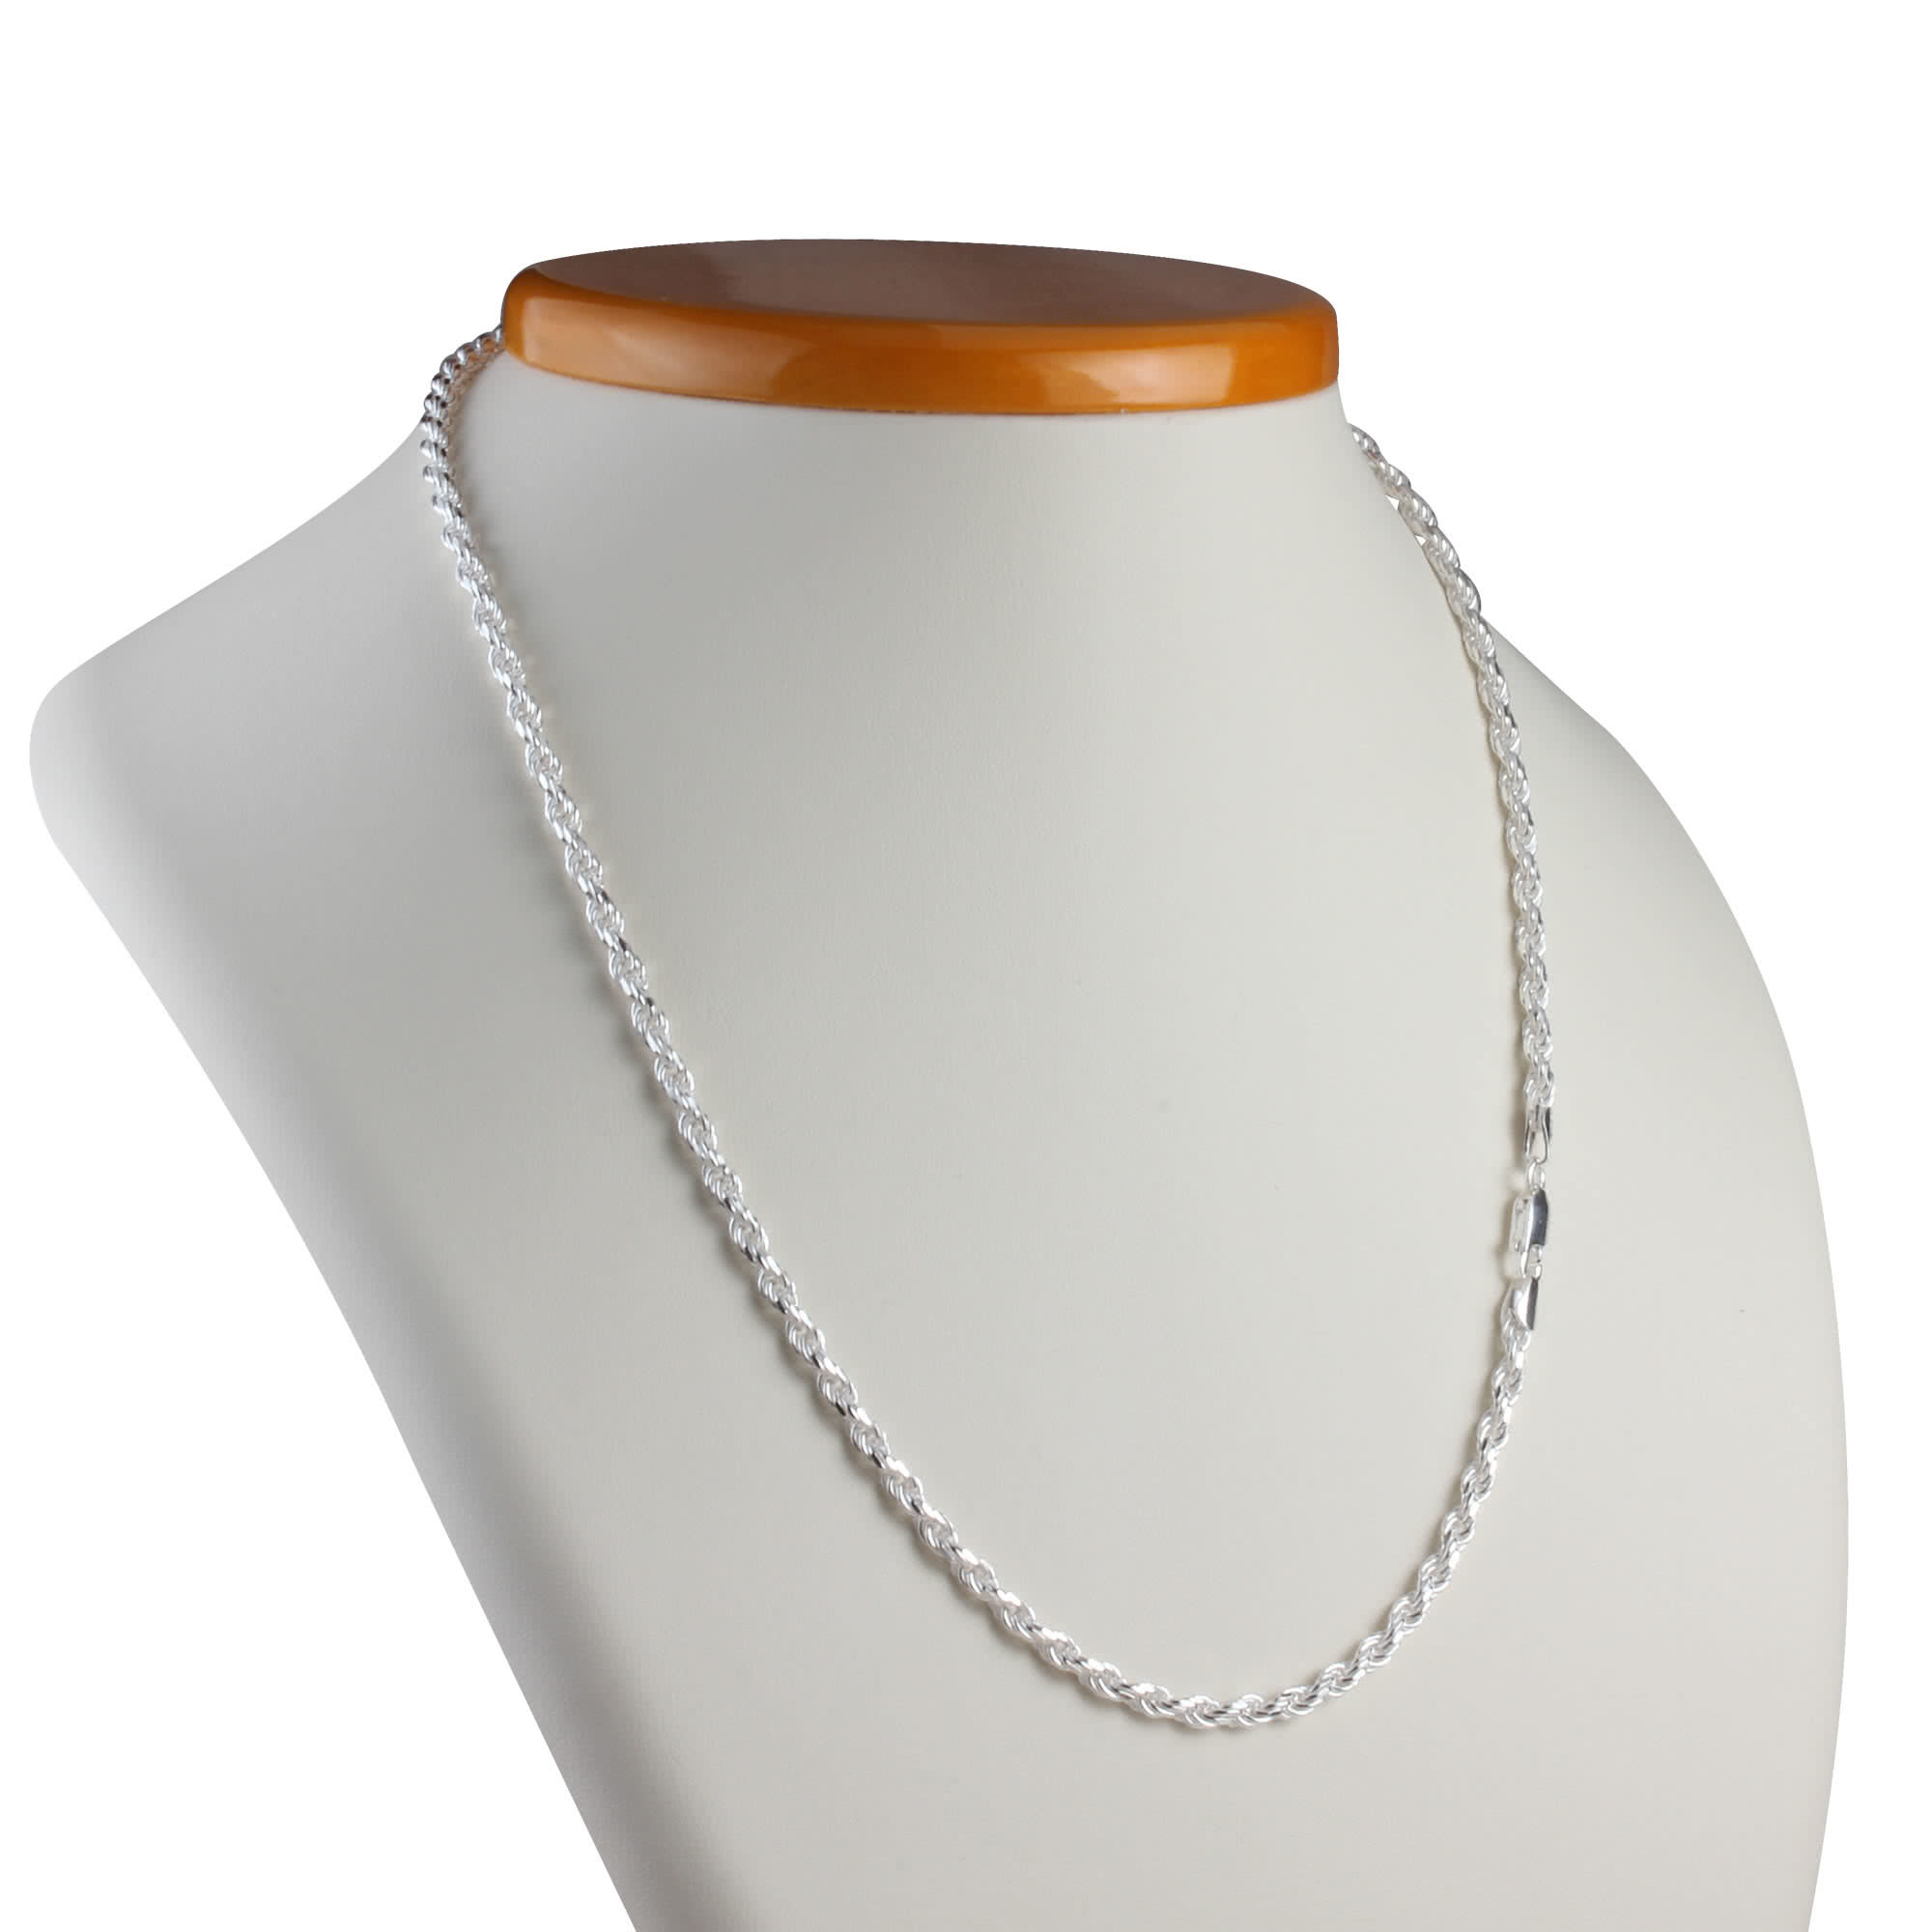 33mm Unisex Diamond Cut Sterling Silver Rope Chain